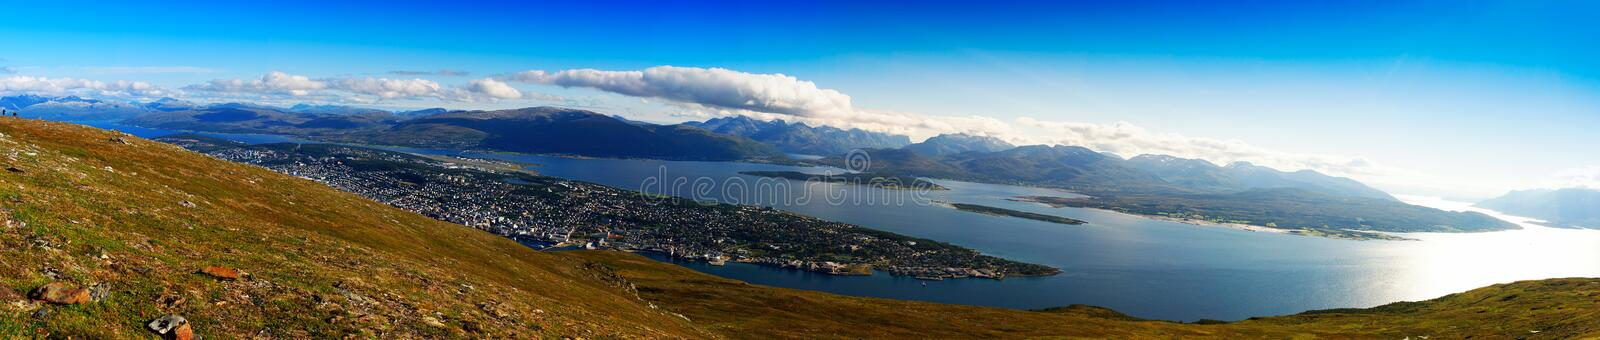 178 Panorama Hd Photos Free Royalty Free Stock Photos From Dreamstime